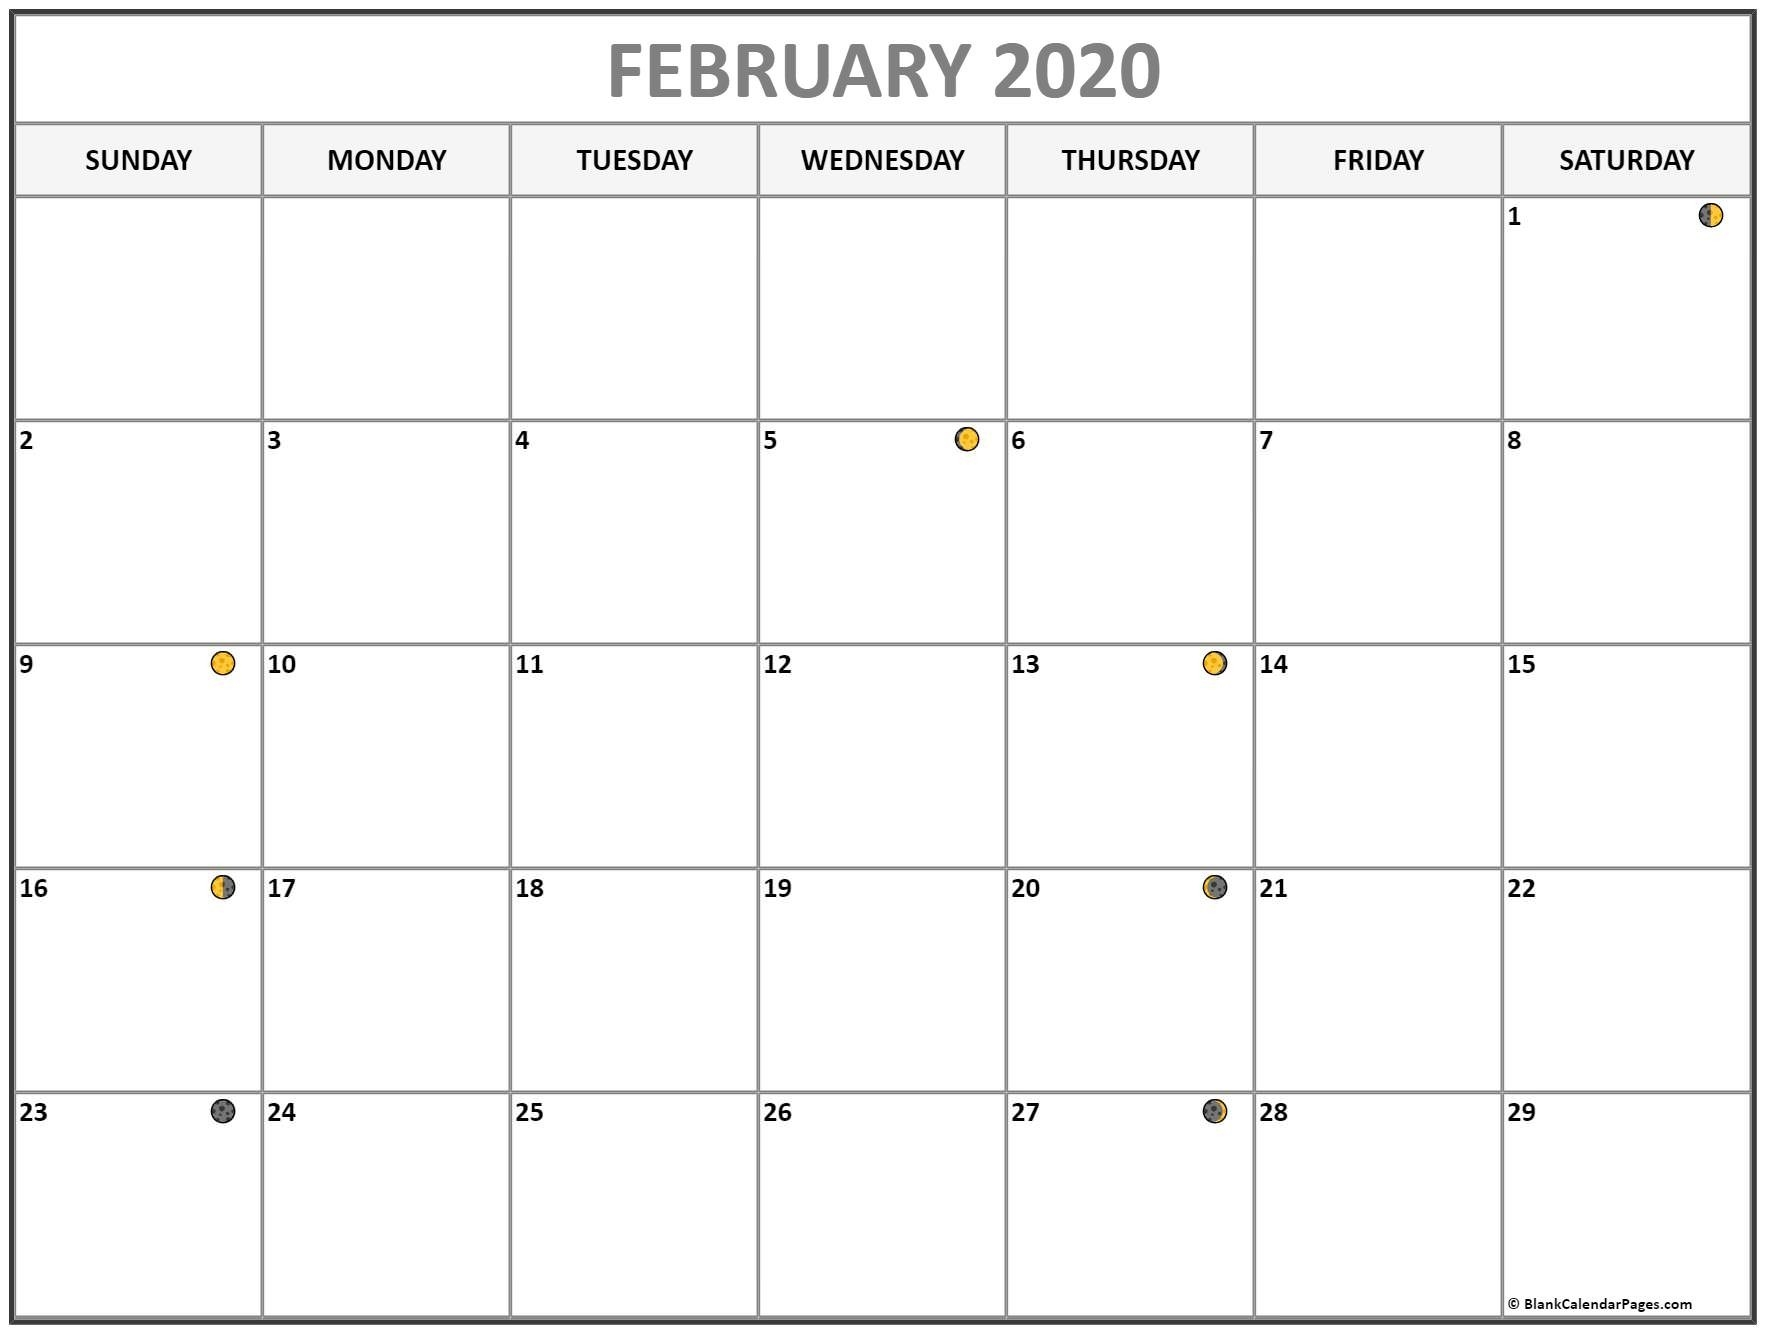 February 2020 Lunar Calendar | Moon Phase Calendar  Lunar And Solar Calendar 2020